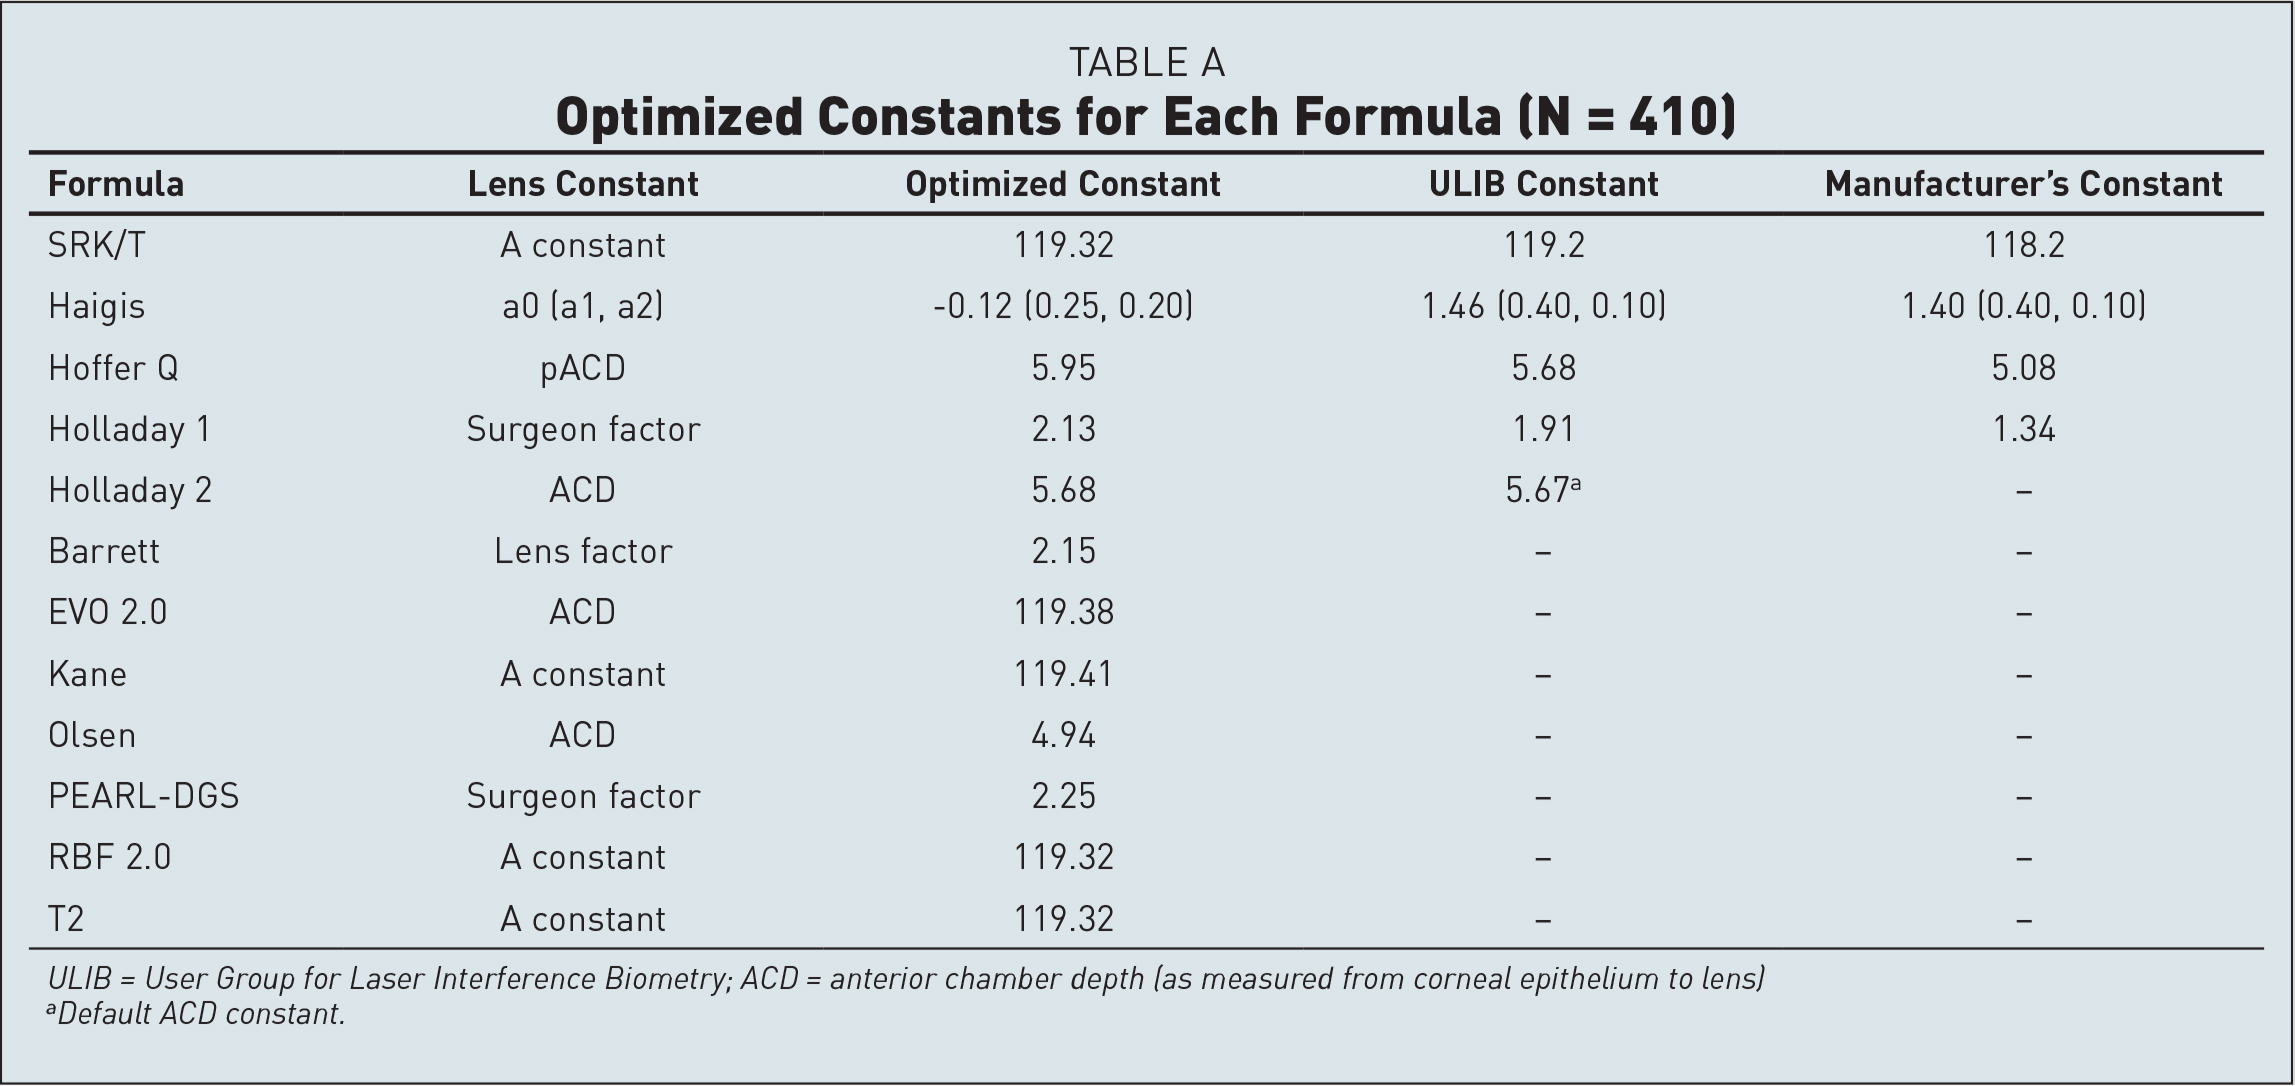 Optimized Constants for Each Formula (N = 410)